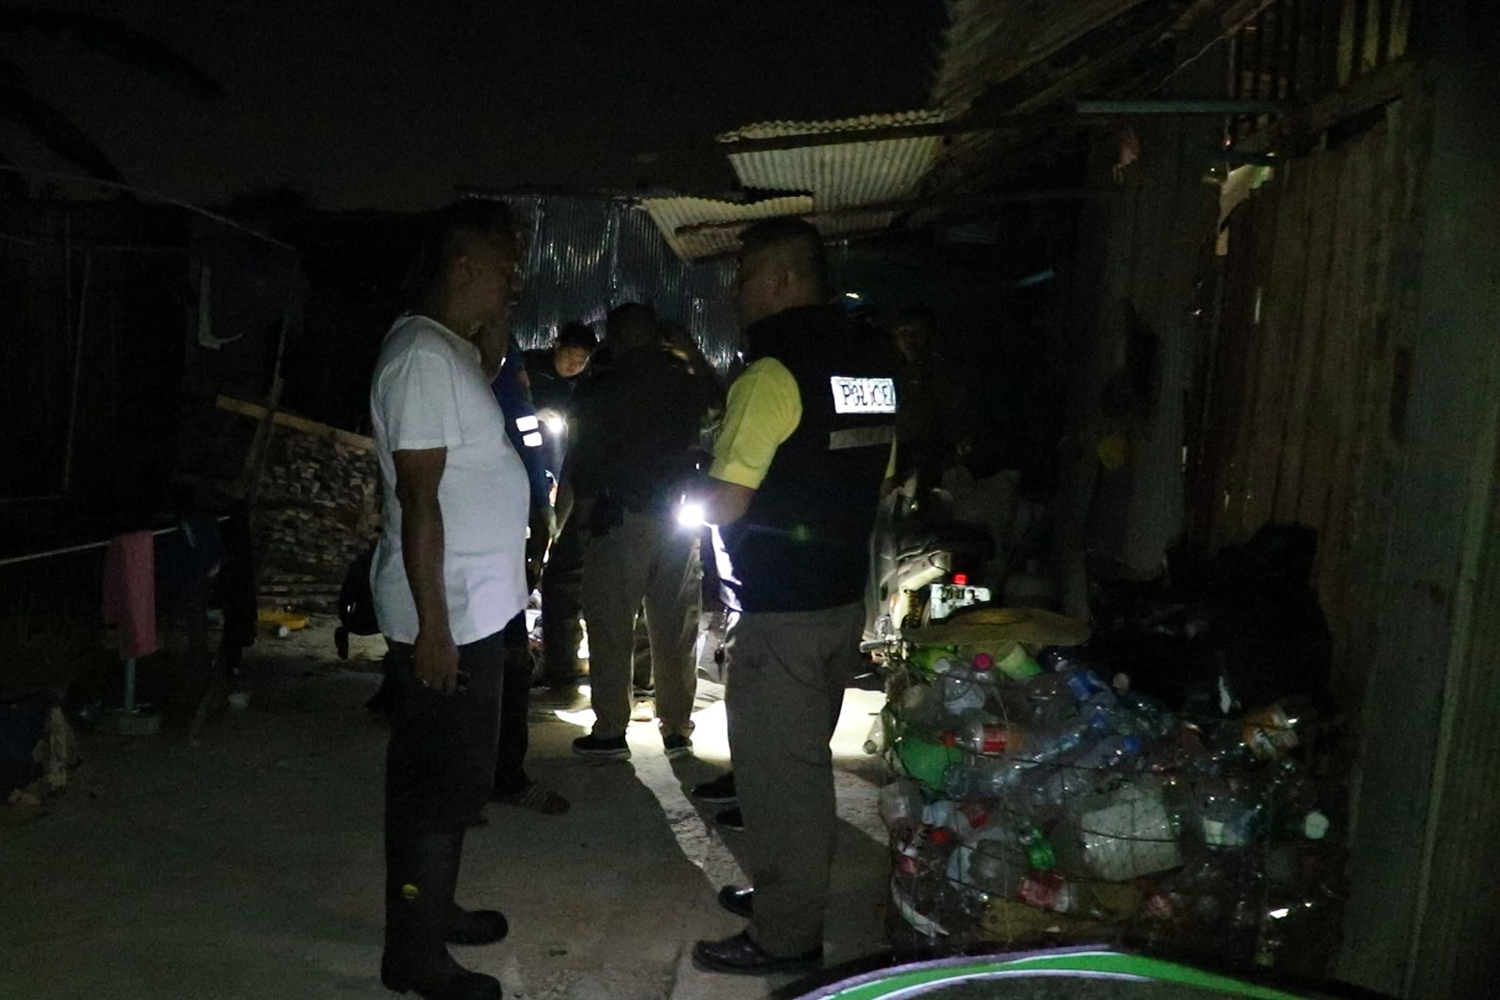 Police examine the body of the unidentified man hit and killed by a Bangkok-bound train while walking on a railway bridge in Songkhla's Hat Yai district on Tuesday night. (Photo by Assawin Pakkawan)